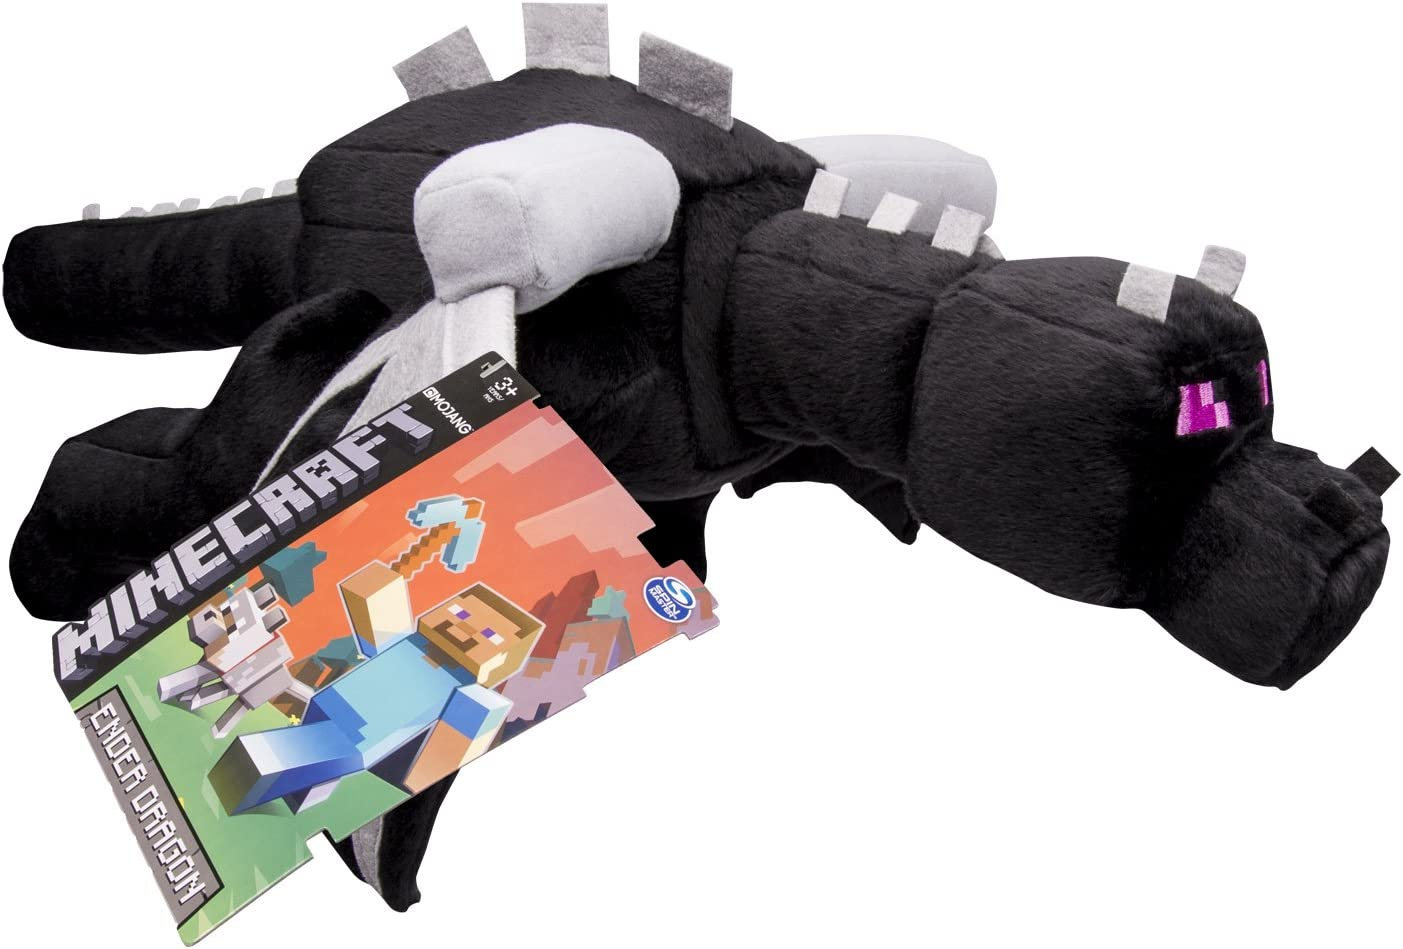 Minecraft 6022921 Super Deluxe Ender Dragon Peluche Amazon Es Juguetes Y Juegos